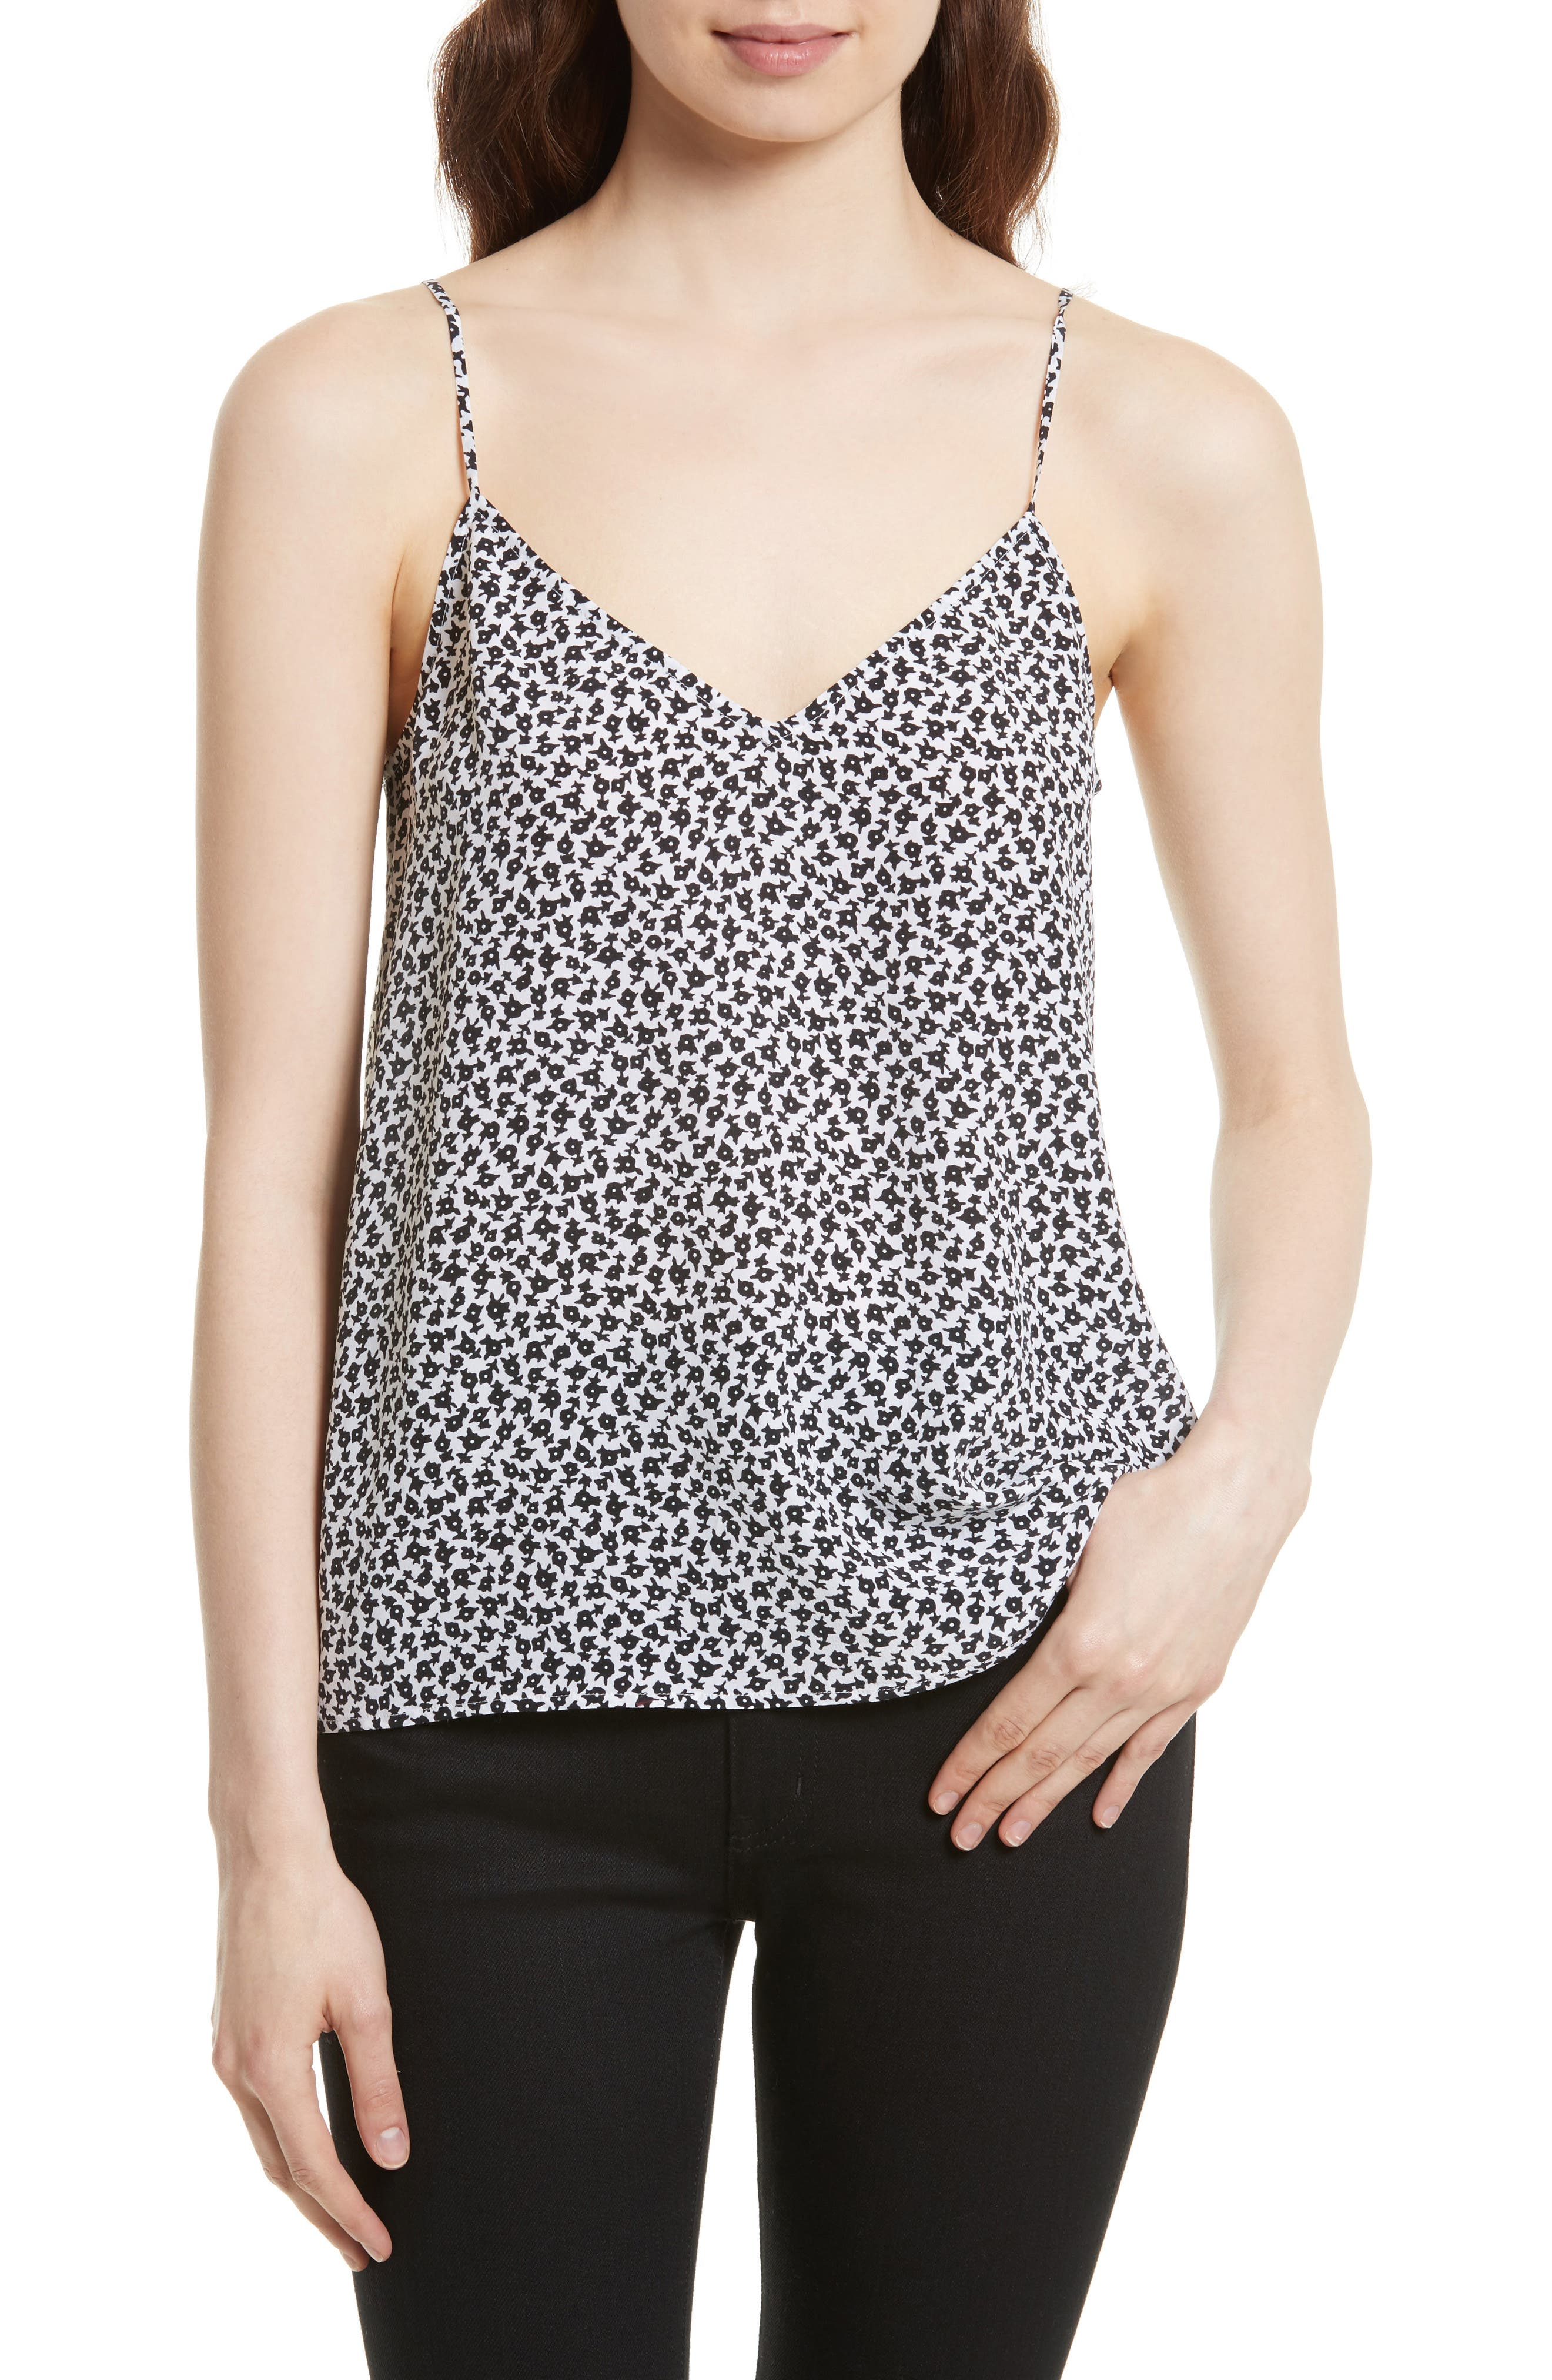 Alternate Image 1 Selected - Equipment Layla Print Silk Camisole